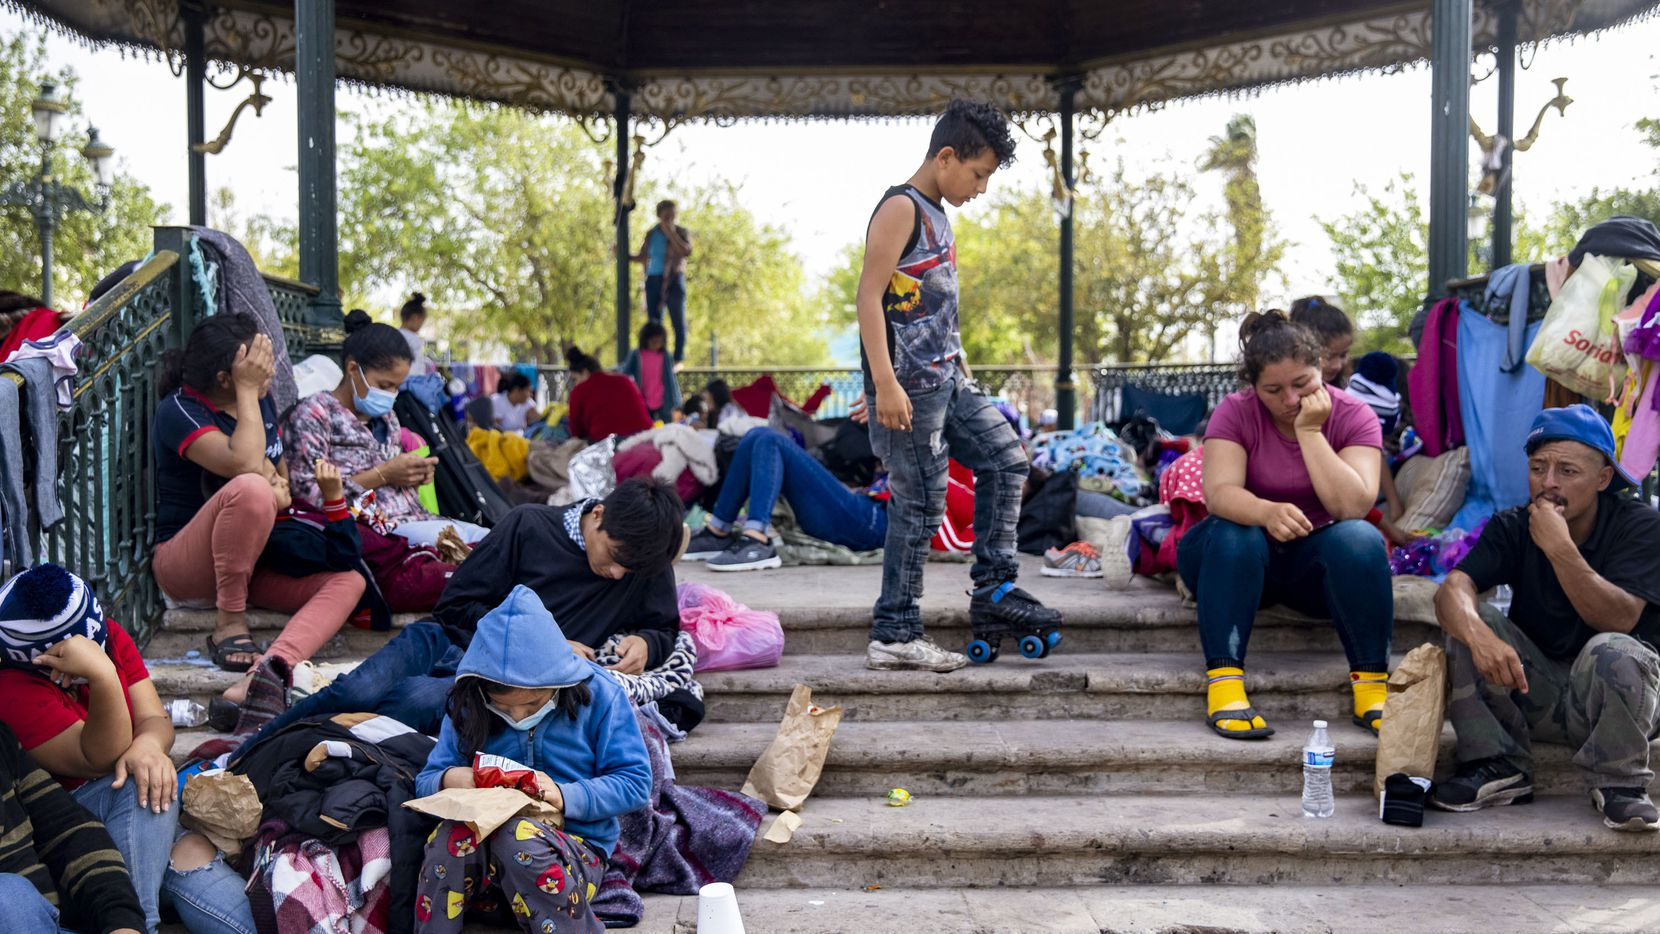 Gov. Greg Abbott, as part of declaring a disaster because of conditions at the Texas-Mexico border, ordered state officials on Tuesday to yank the licenses of child-care facilities housing unaccompanied children for the federal government. File photo shows expelled migrants living at a gazebo in a public square in the Mexican border city of Reynosa. Thg U.S. continues to expel migrants under Title 42 — a pandemic-related public order still in place and left over from the Trump administration.